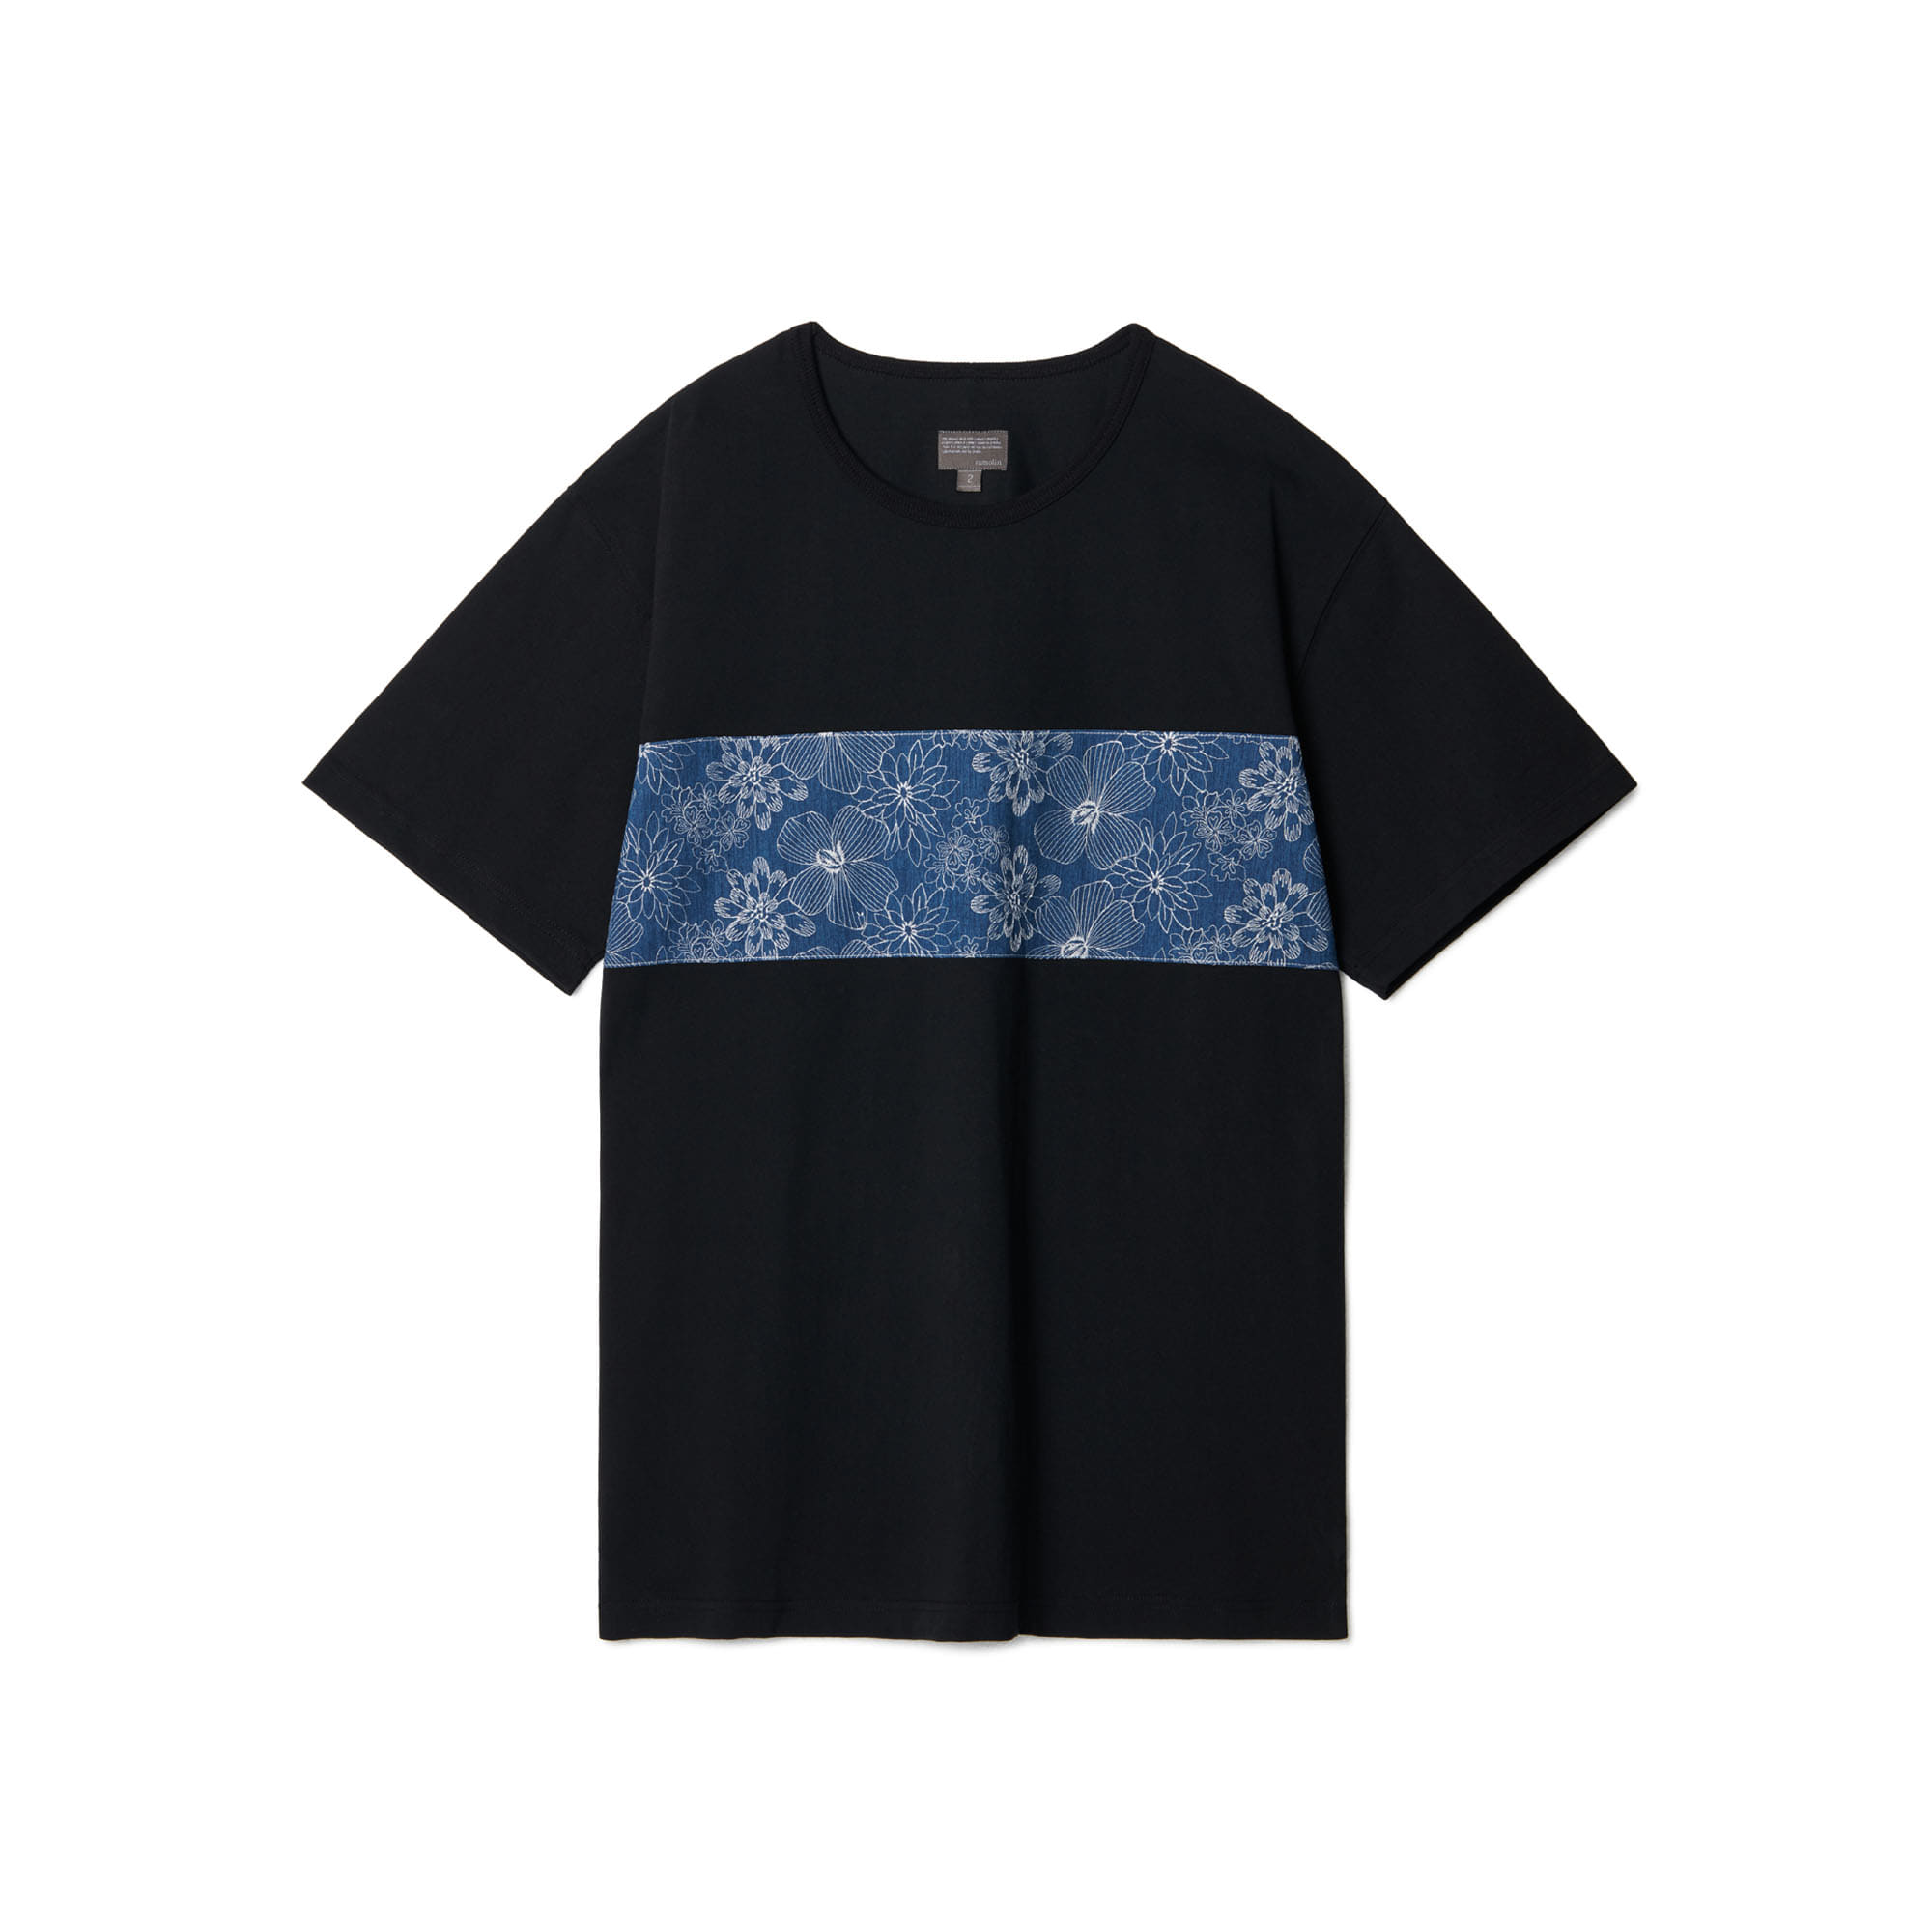 Flower Embroidery Block T-shirts Black